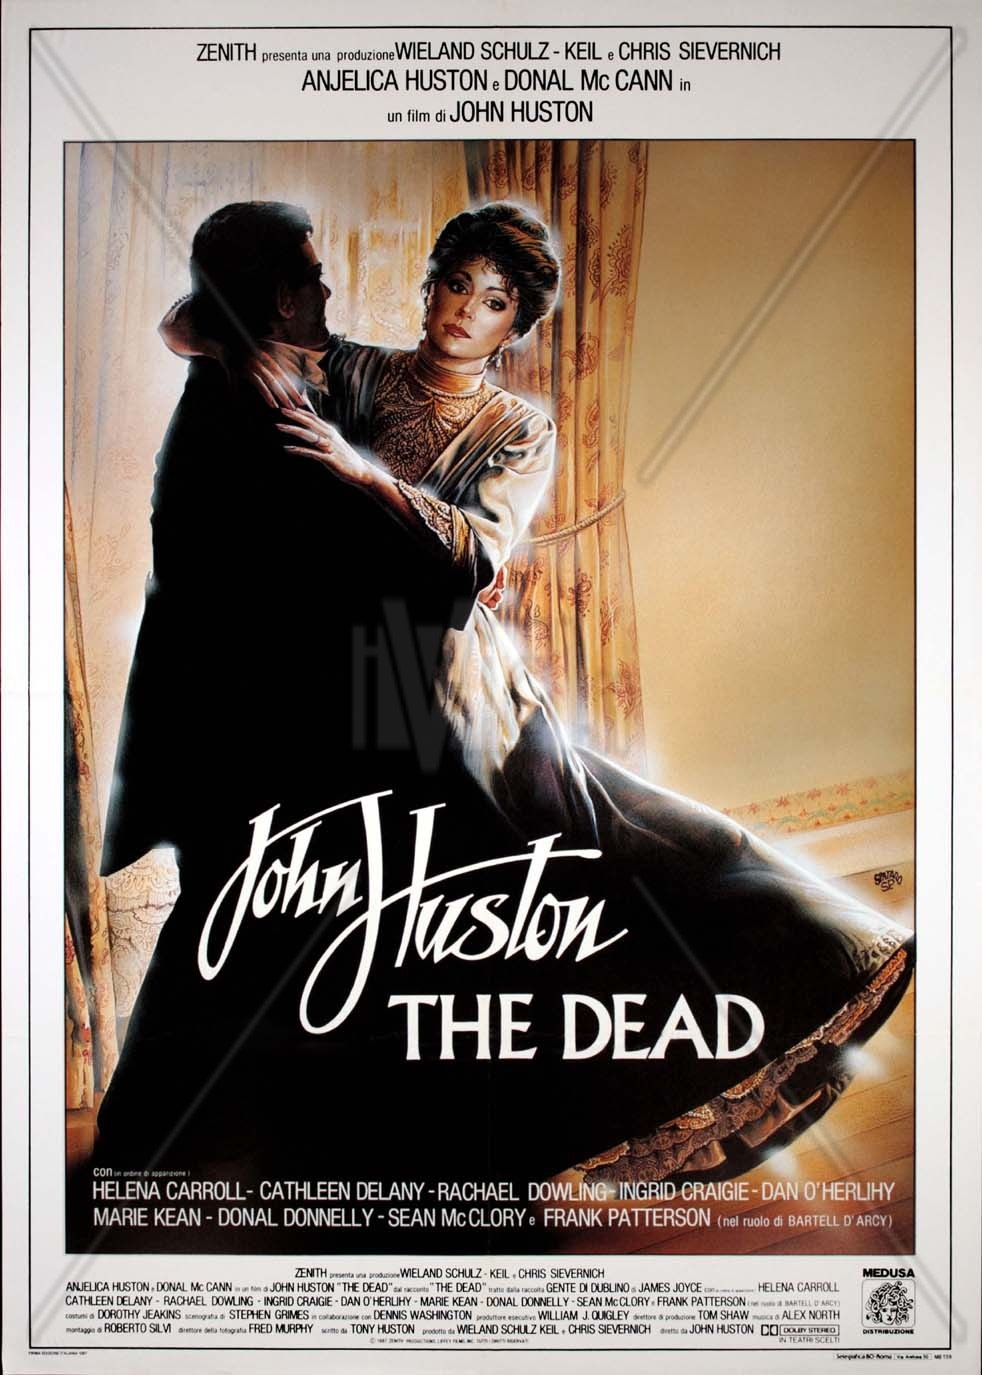 analysis of john hustons the dead Many authors use nature to analyze human nature and depict the human condition james joyce uses the snow to cast light on the characters, convey the meaning in the events and provide further analysis of the themes within the dead.